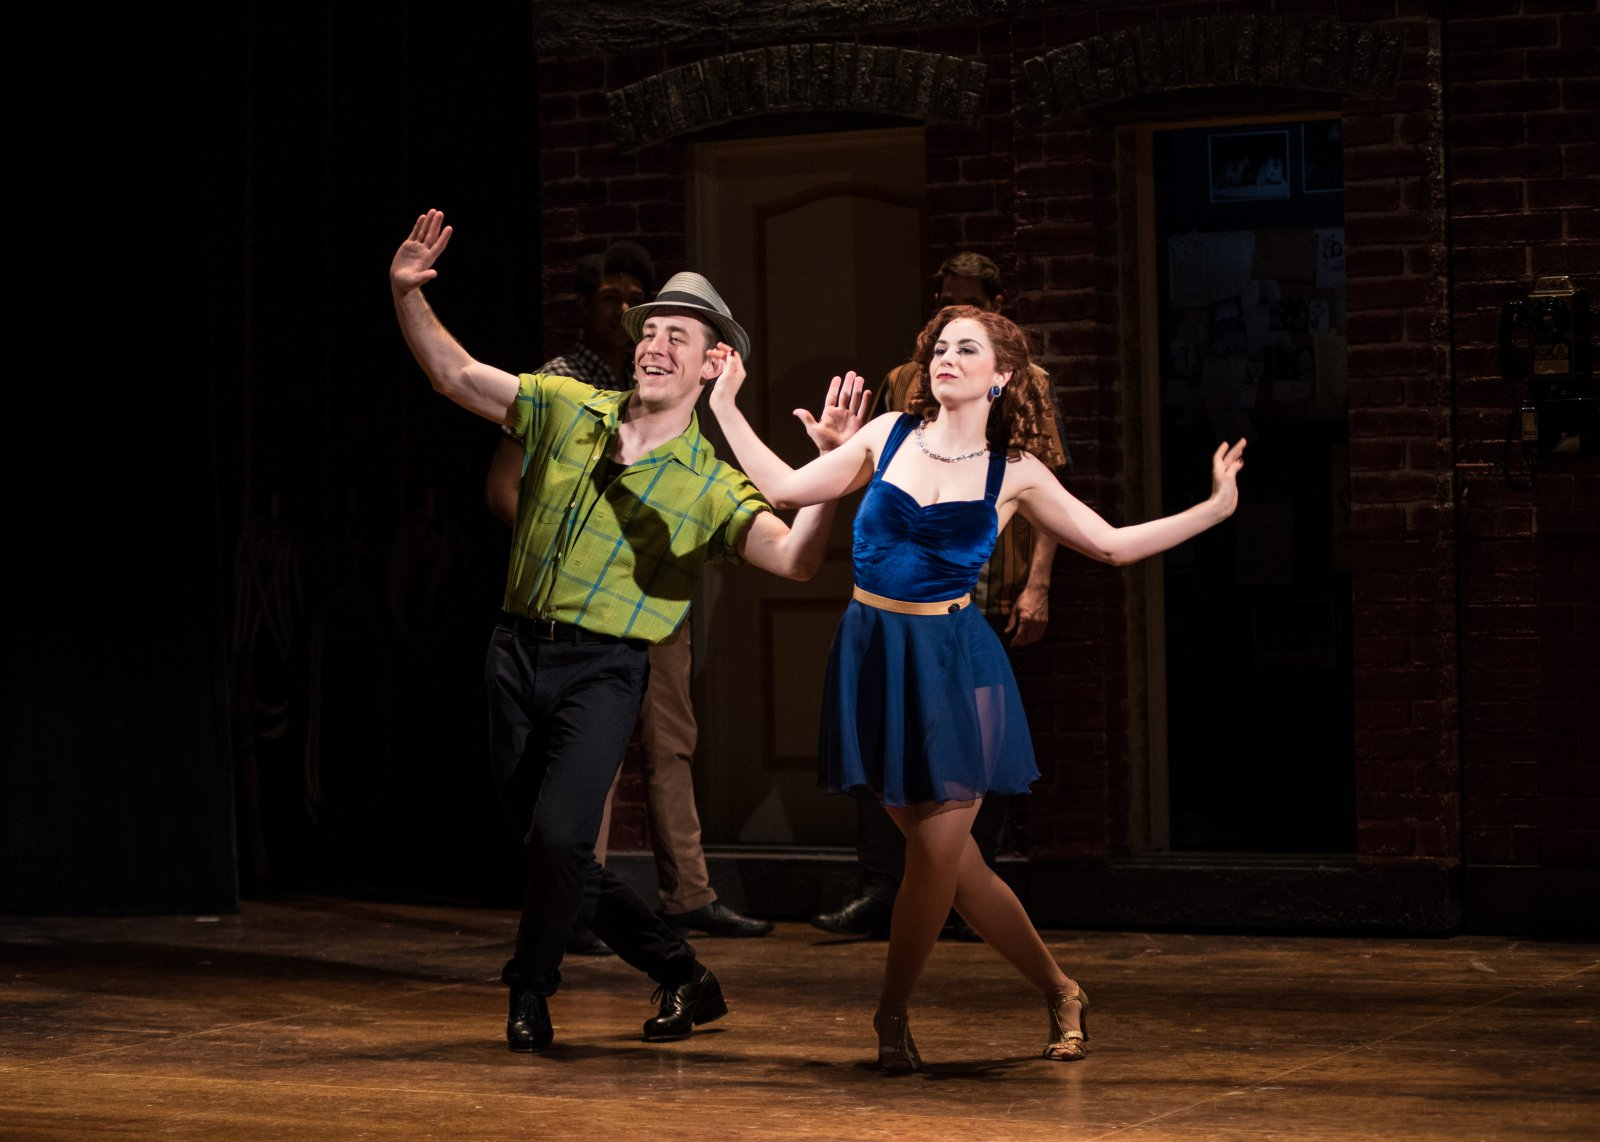 (l. to r.) Joe Capstick (Bill Calhoun/Lucentio) and Kaylee Annable (Lois Lane/Bianca) in rehearsal for Skylight Music Theatre's production of Kiss Me, Kate May 17 – June 16.